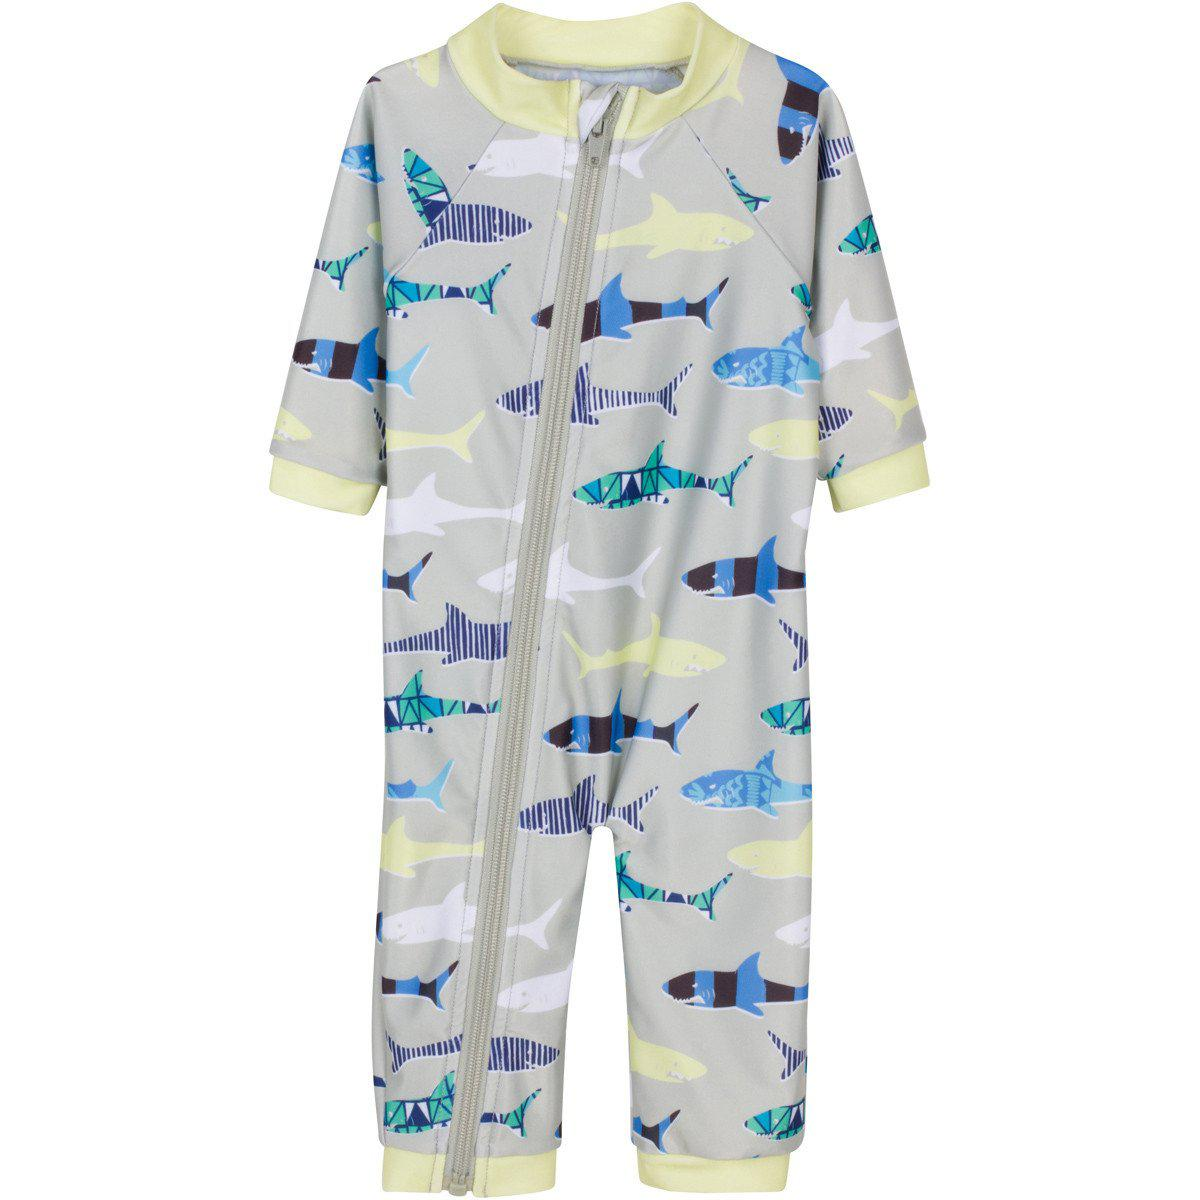 sunsuit shark feast boy long sleeve romper uv upf swimzip boy long sleeve romper upf 50 uv sun protection shark feast